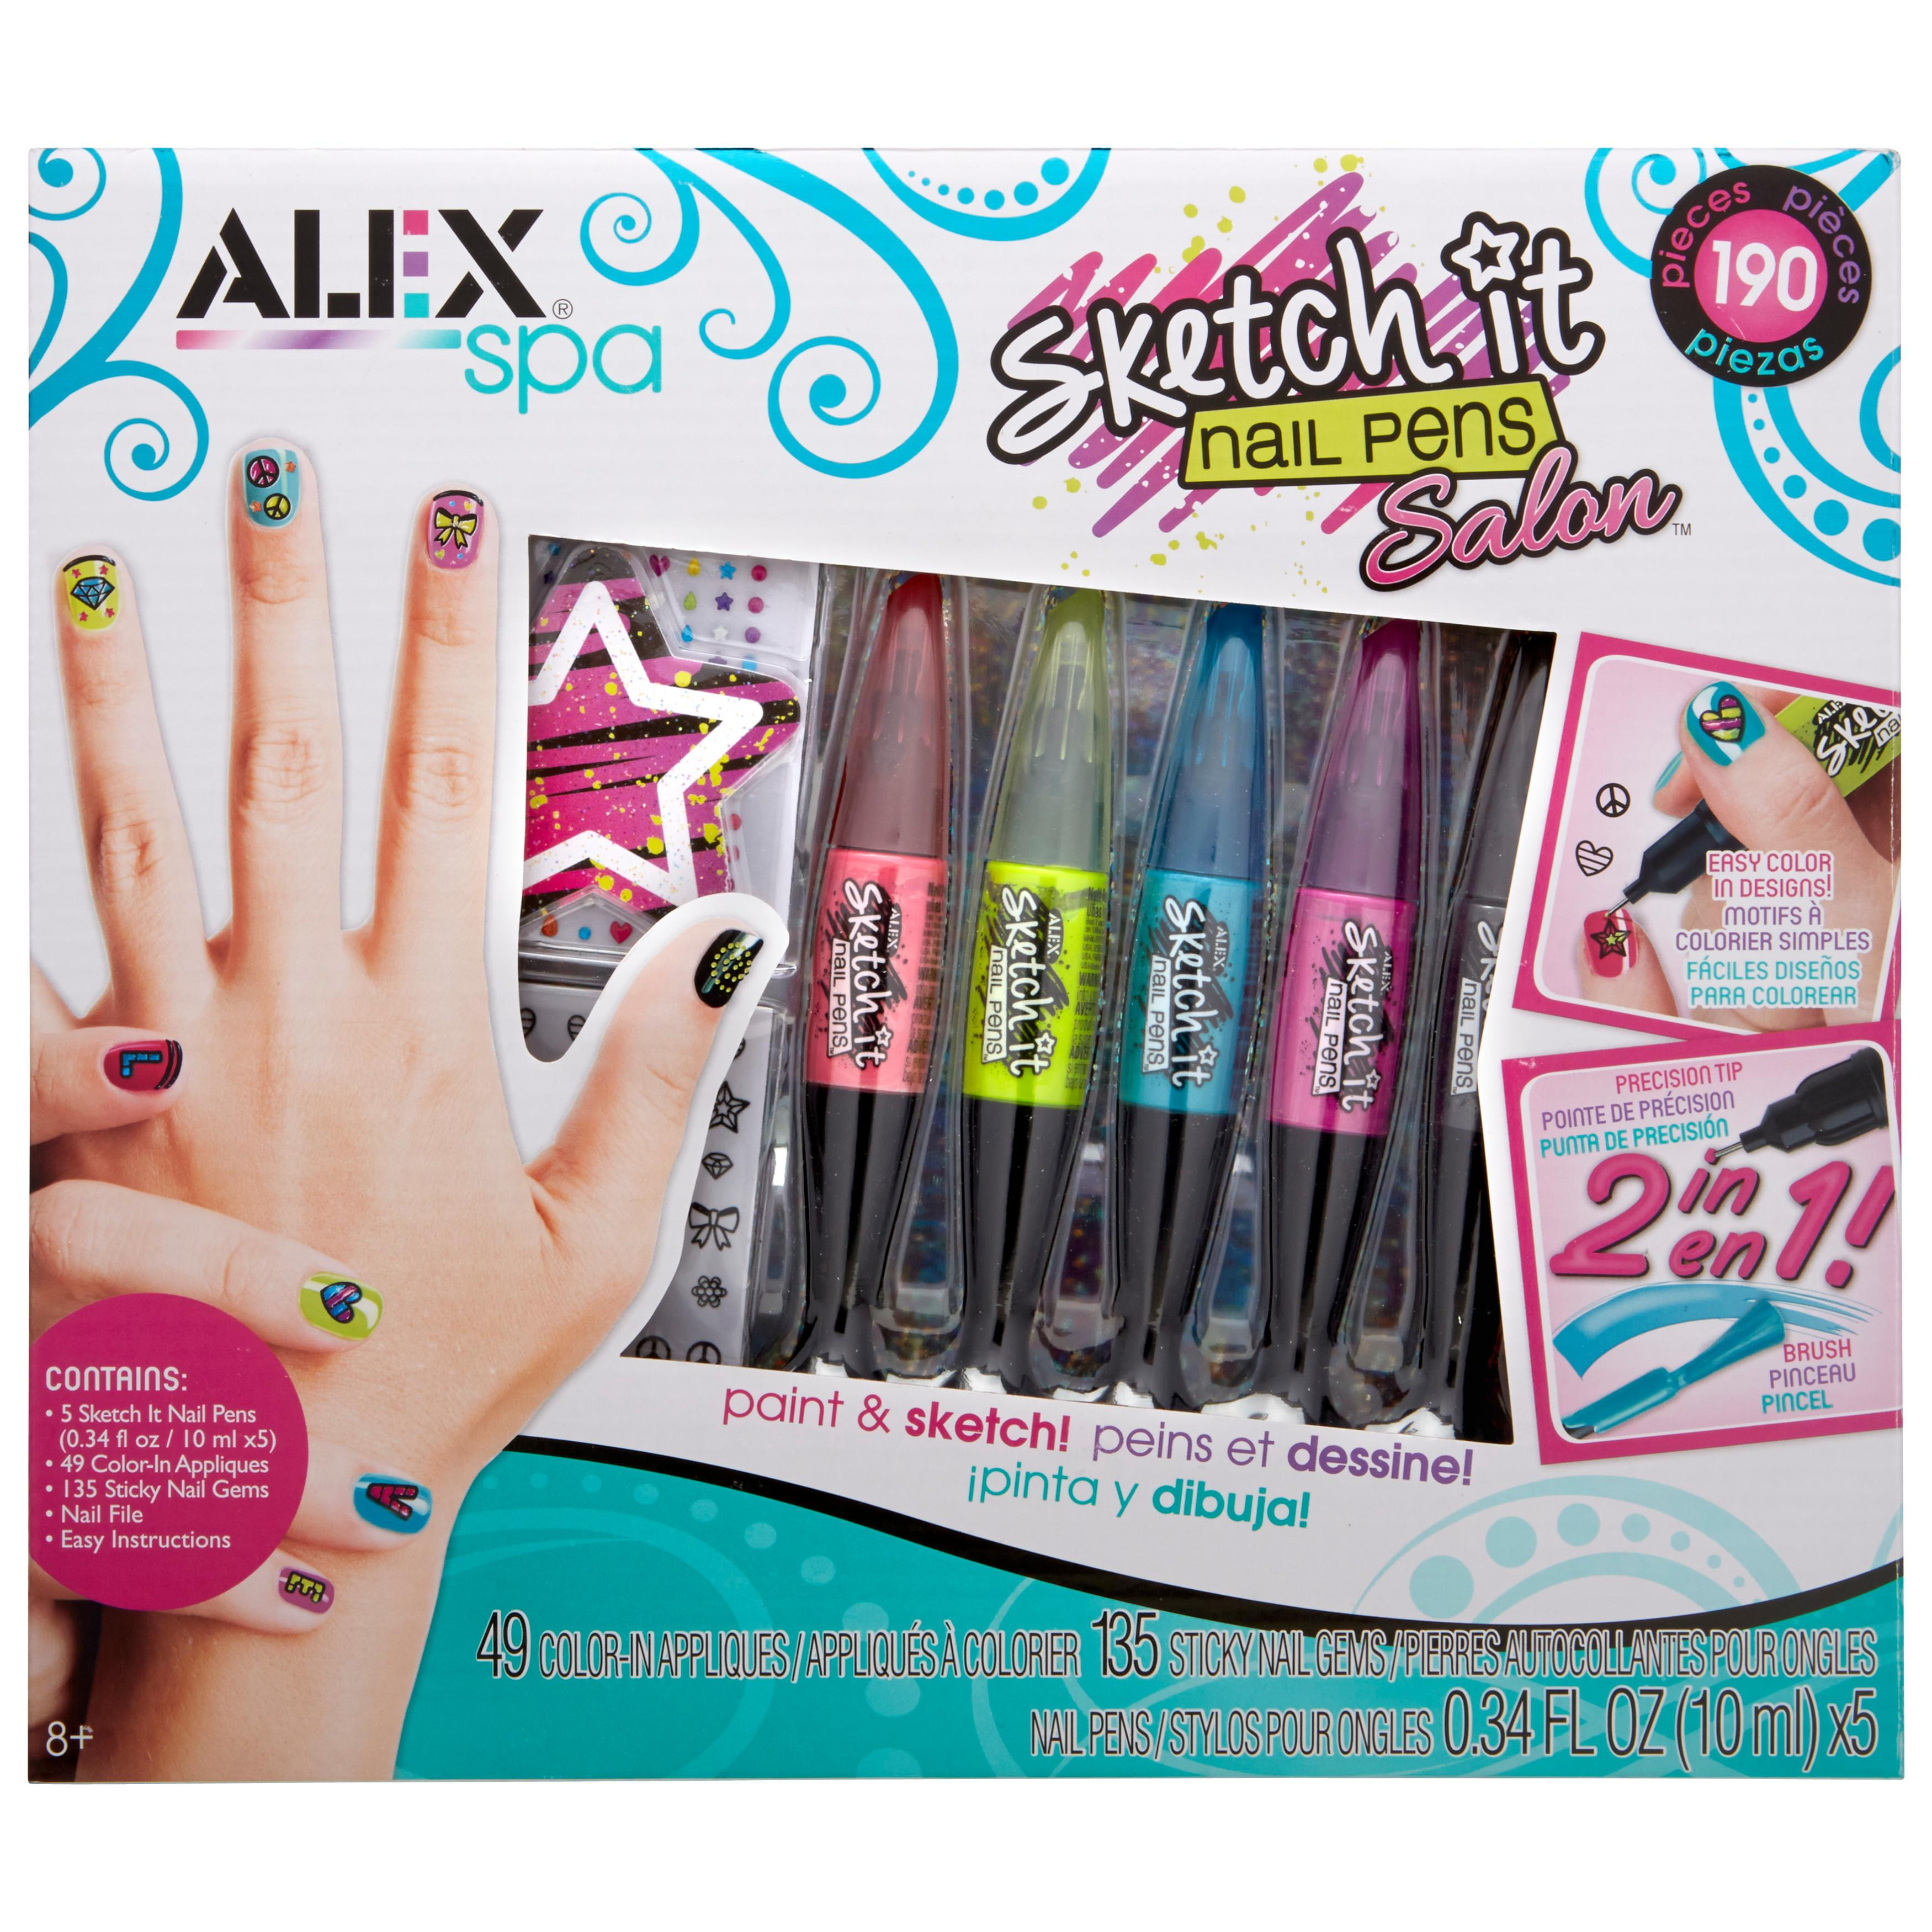 Amazon.com ALEX Spa Sketch It Nail Pens Salon Toys U0026 Games